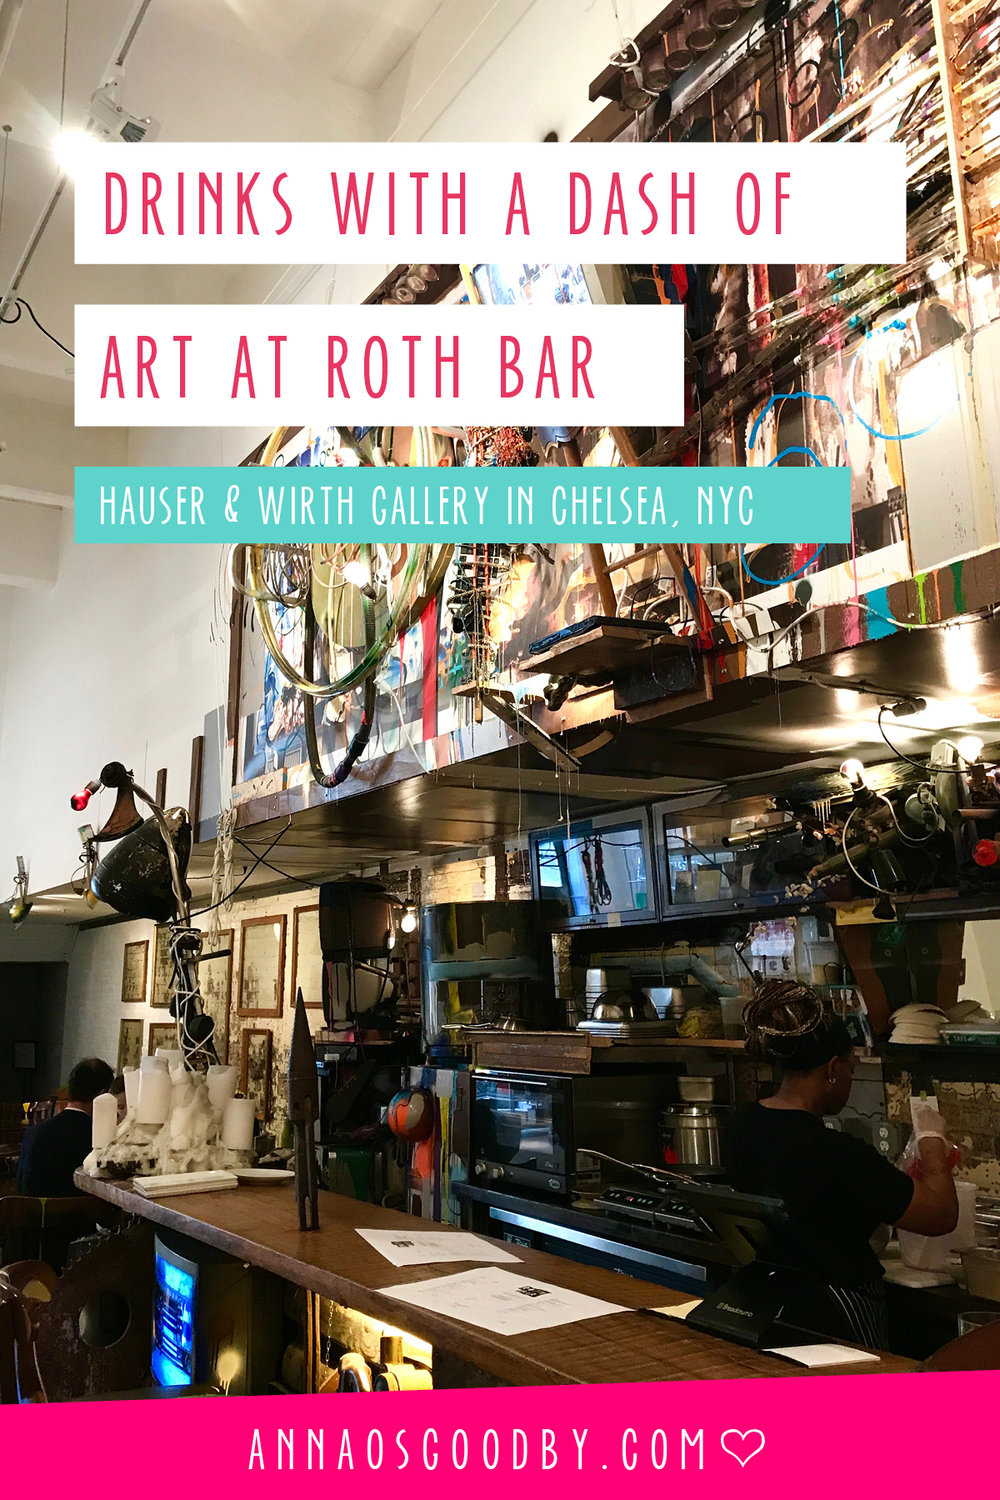 Anna Osgoodby Life + Design Lifestyle Blog :: Drinks with a Dash of Art at Roth Bar in Chelsea, NYC